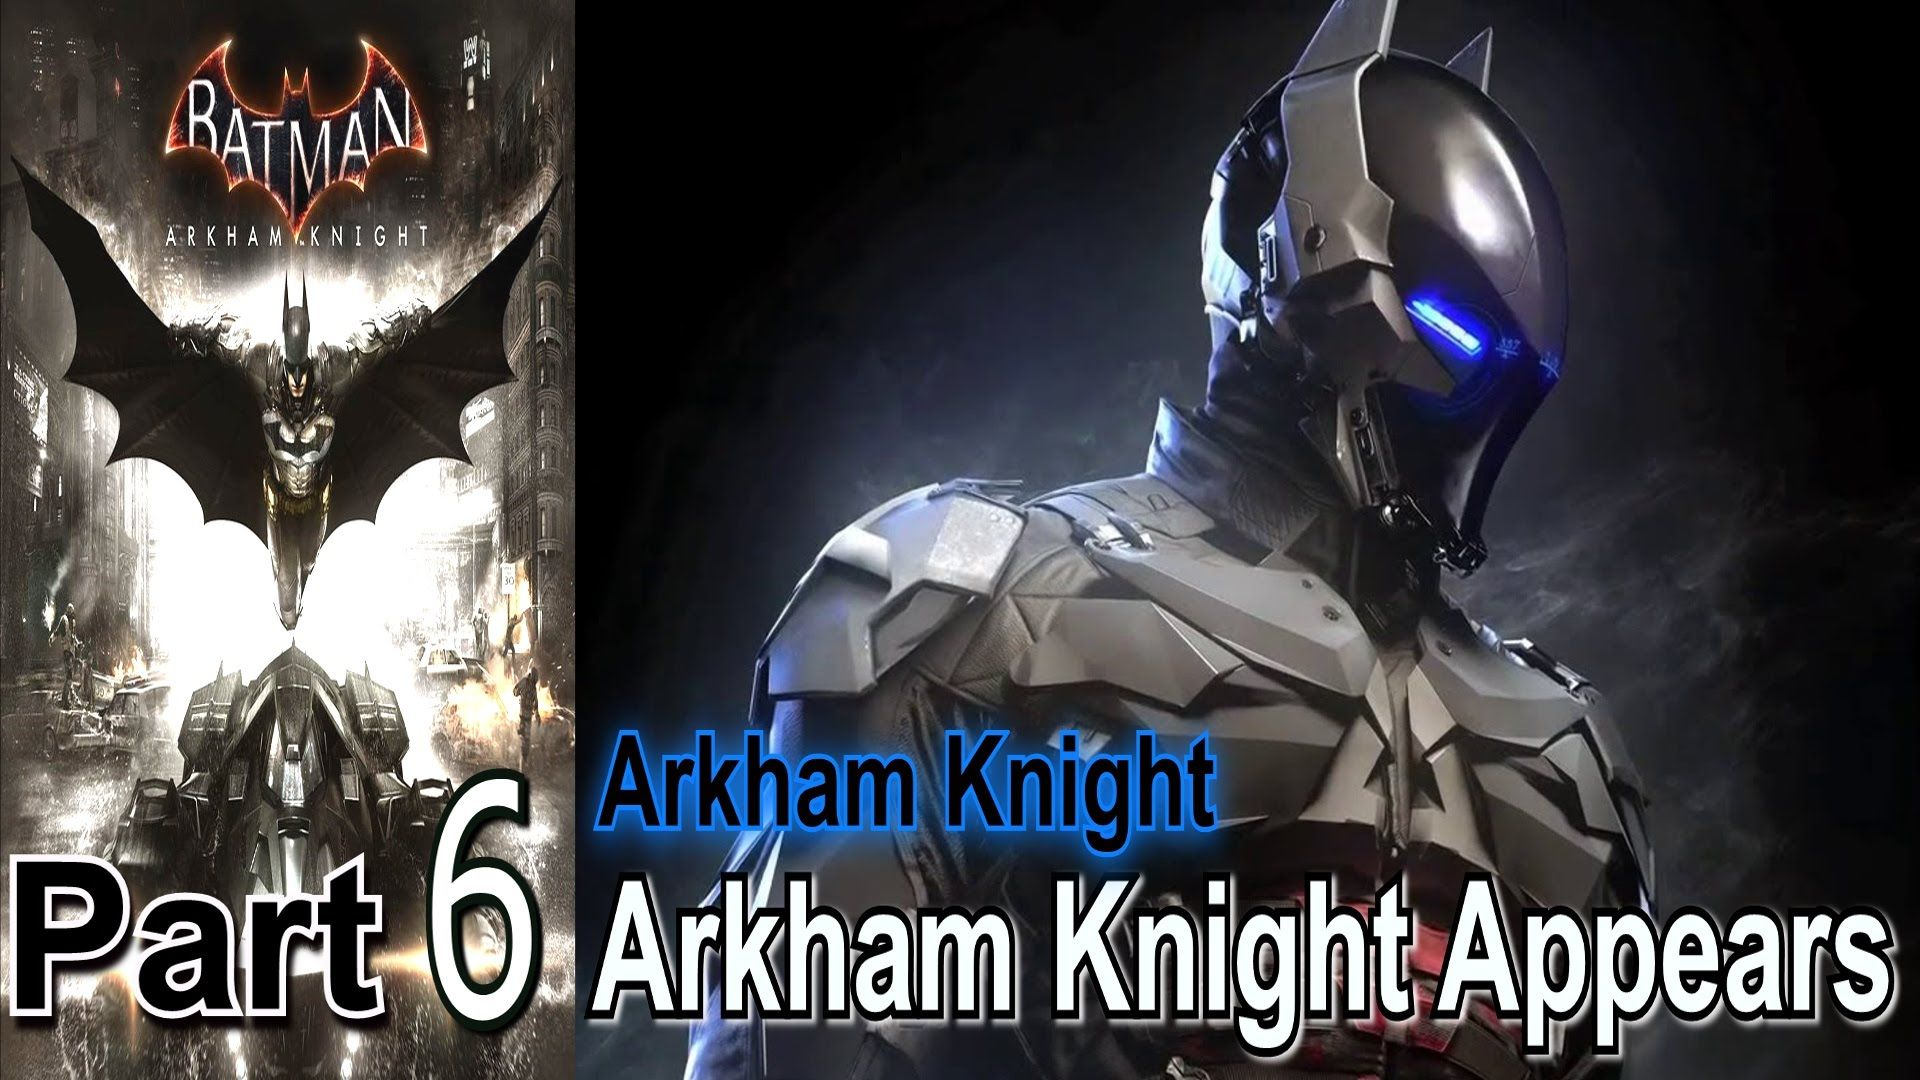 Batman Arkham Knight Part 6 Arkham Knight Appears Walkthrough Gameplay Lets Play @Quickest_Rts @Gamer_RTweets @Dare_RT @ReTweetQueen86 @retweets_fast @ShawnAbner @GamerRTer https://www.youtube.com/channel/Hovacones1?Sub_confirmation=1